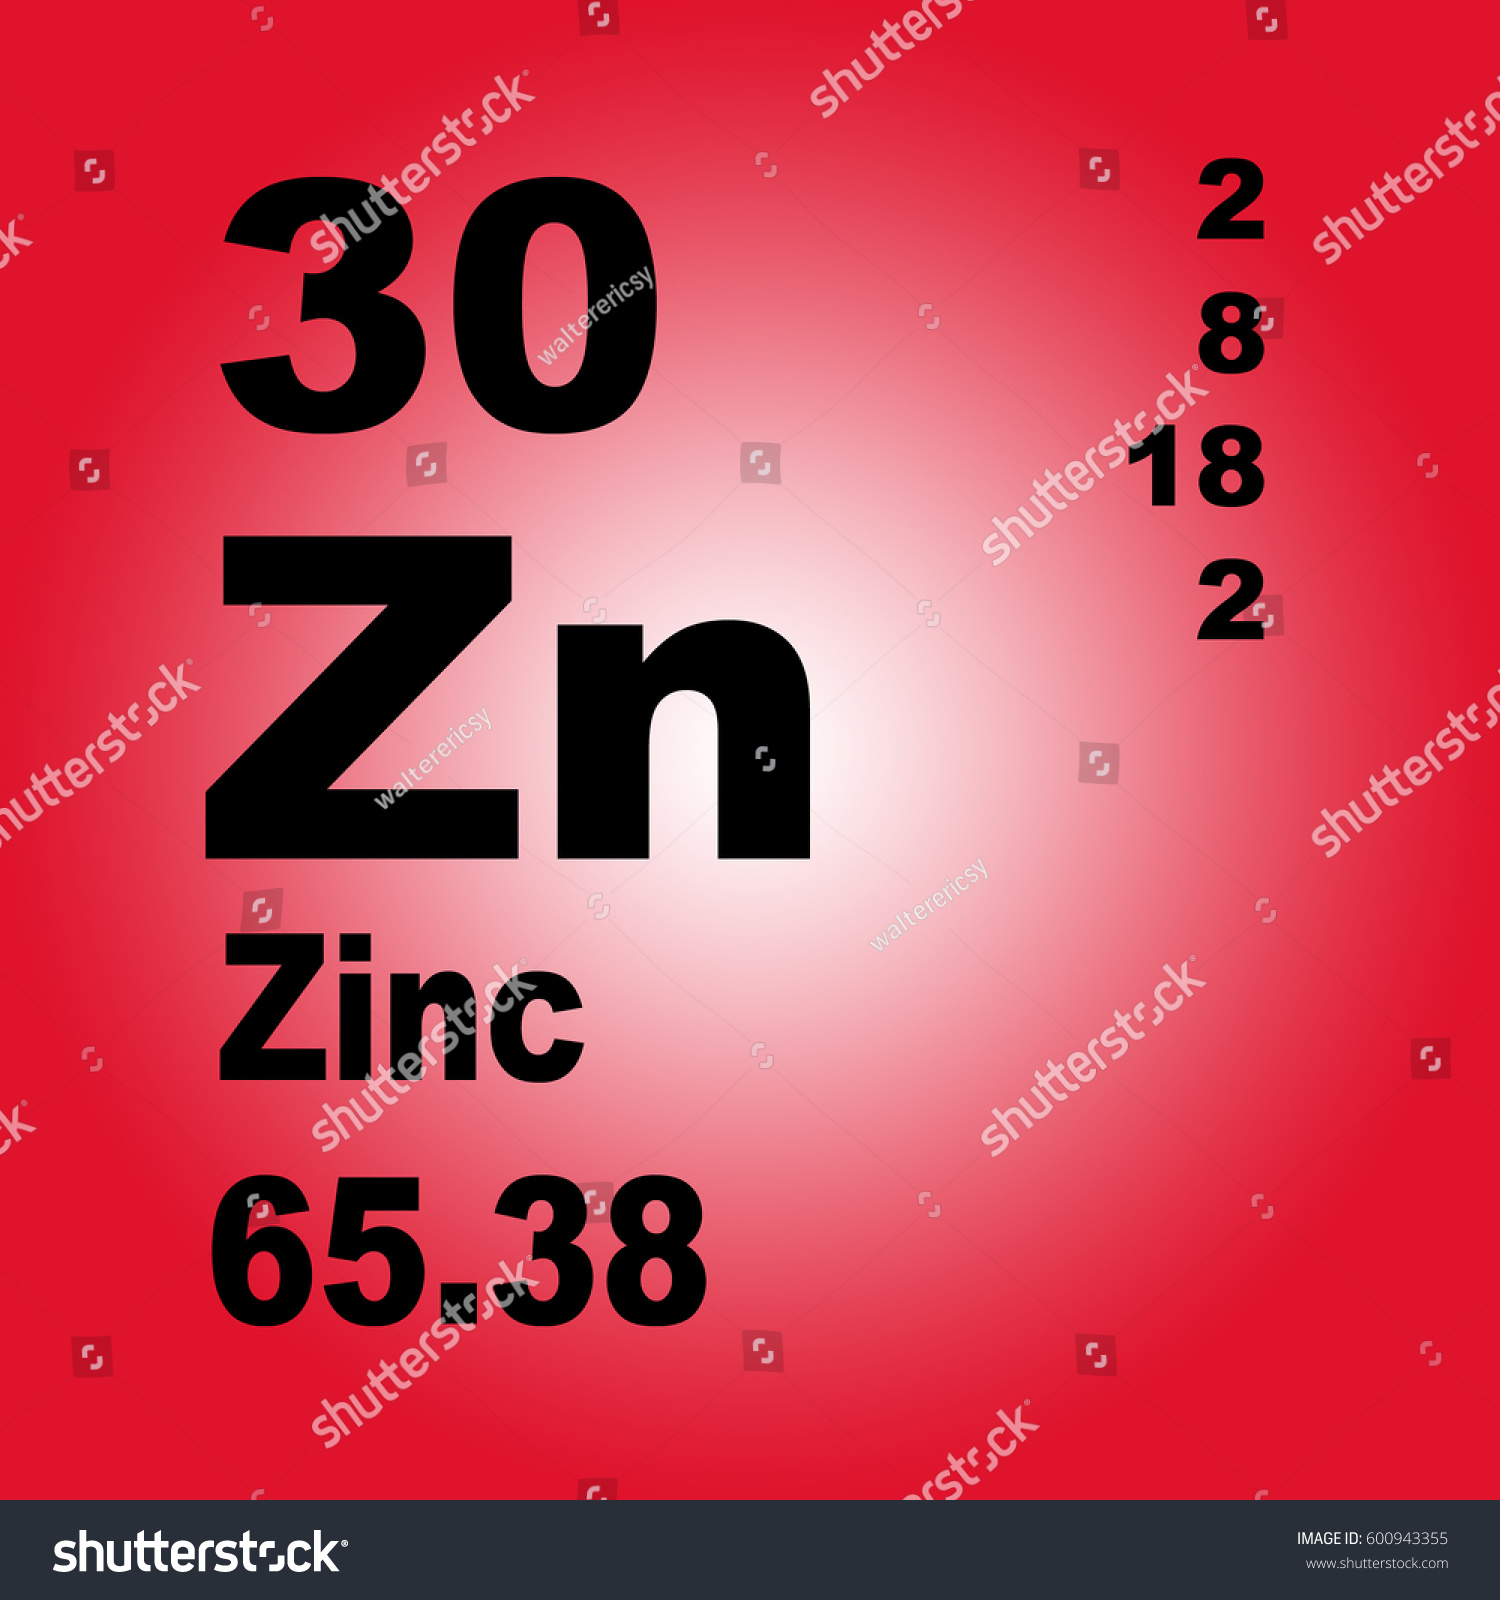 Zinc periodic table elements stock illustration 600943355 zinc periodic table of elements gamestrikefo Image collections